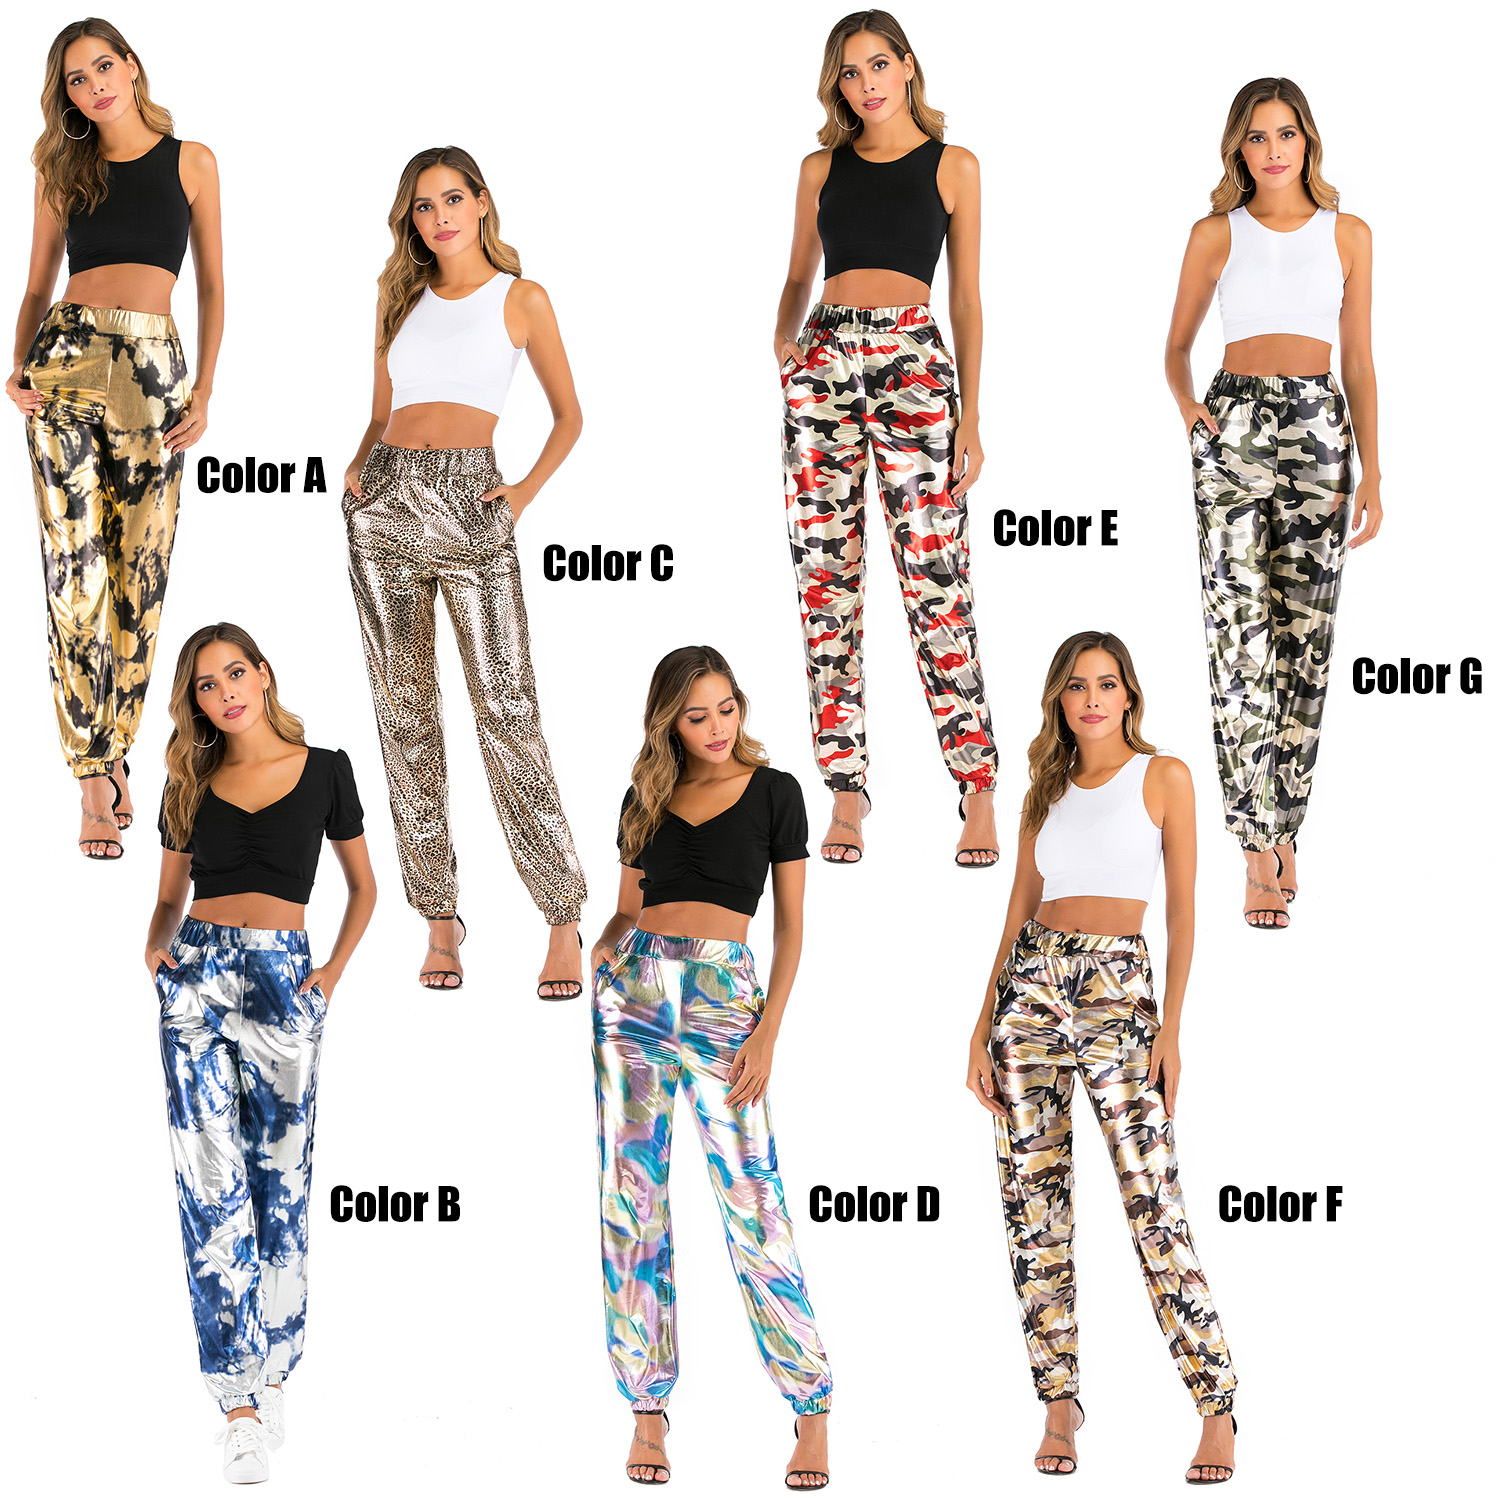 Fashion Women Pants High Waist Sports Casual Jogger Pants Sweatpants Hip Hop Trousers Streetwear with Elastic Cuffs Plus Size 9